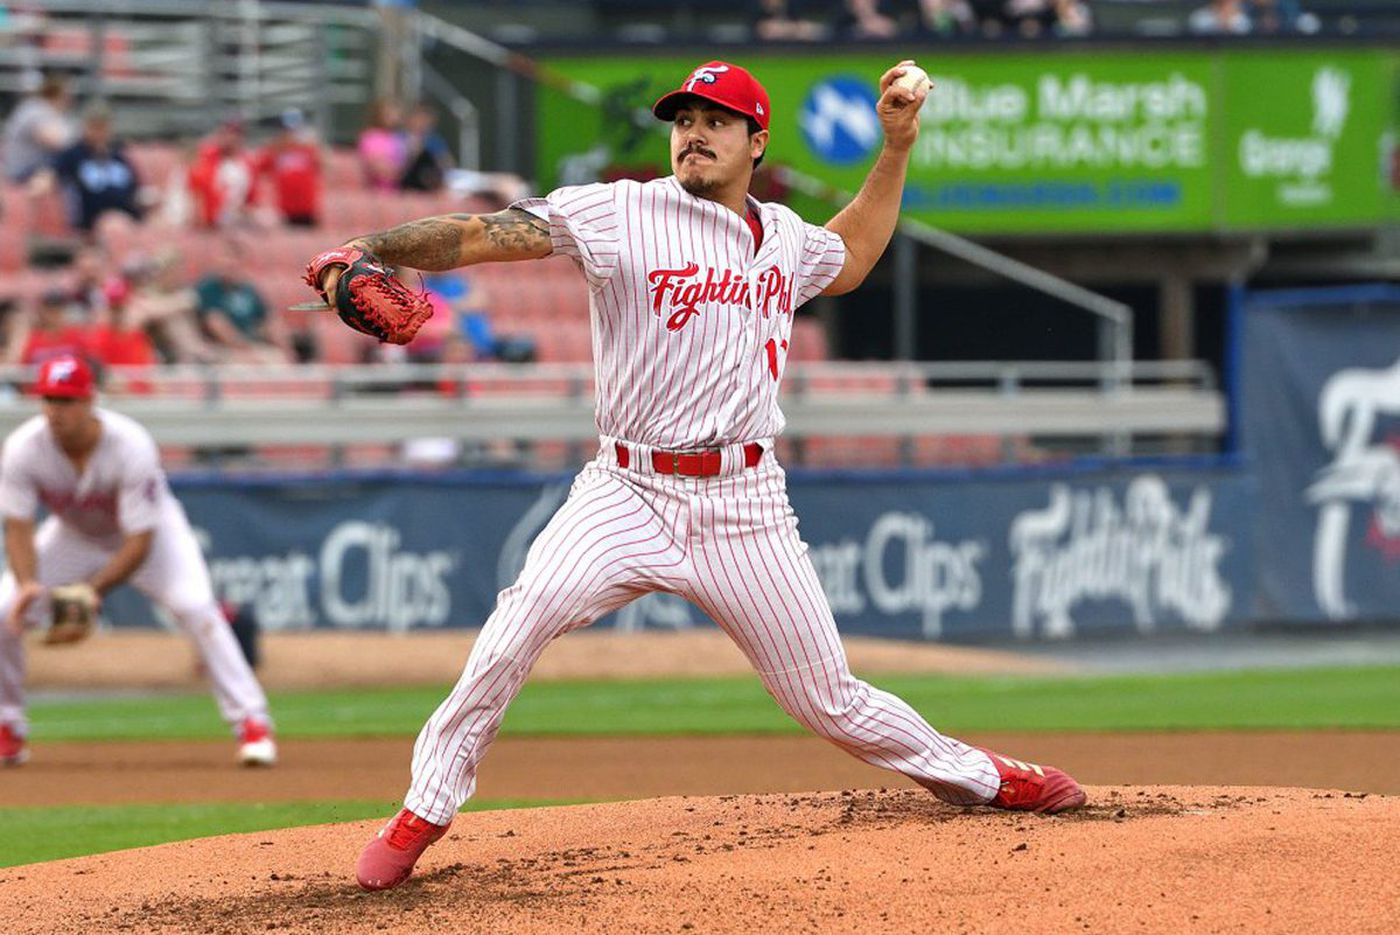 Phillies minor league report: Cole Irvin, Jojo Romero, Will Stewart have solid outings